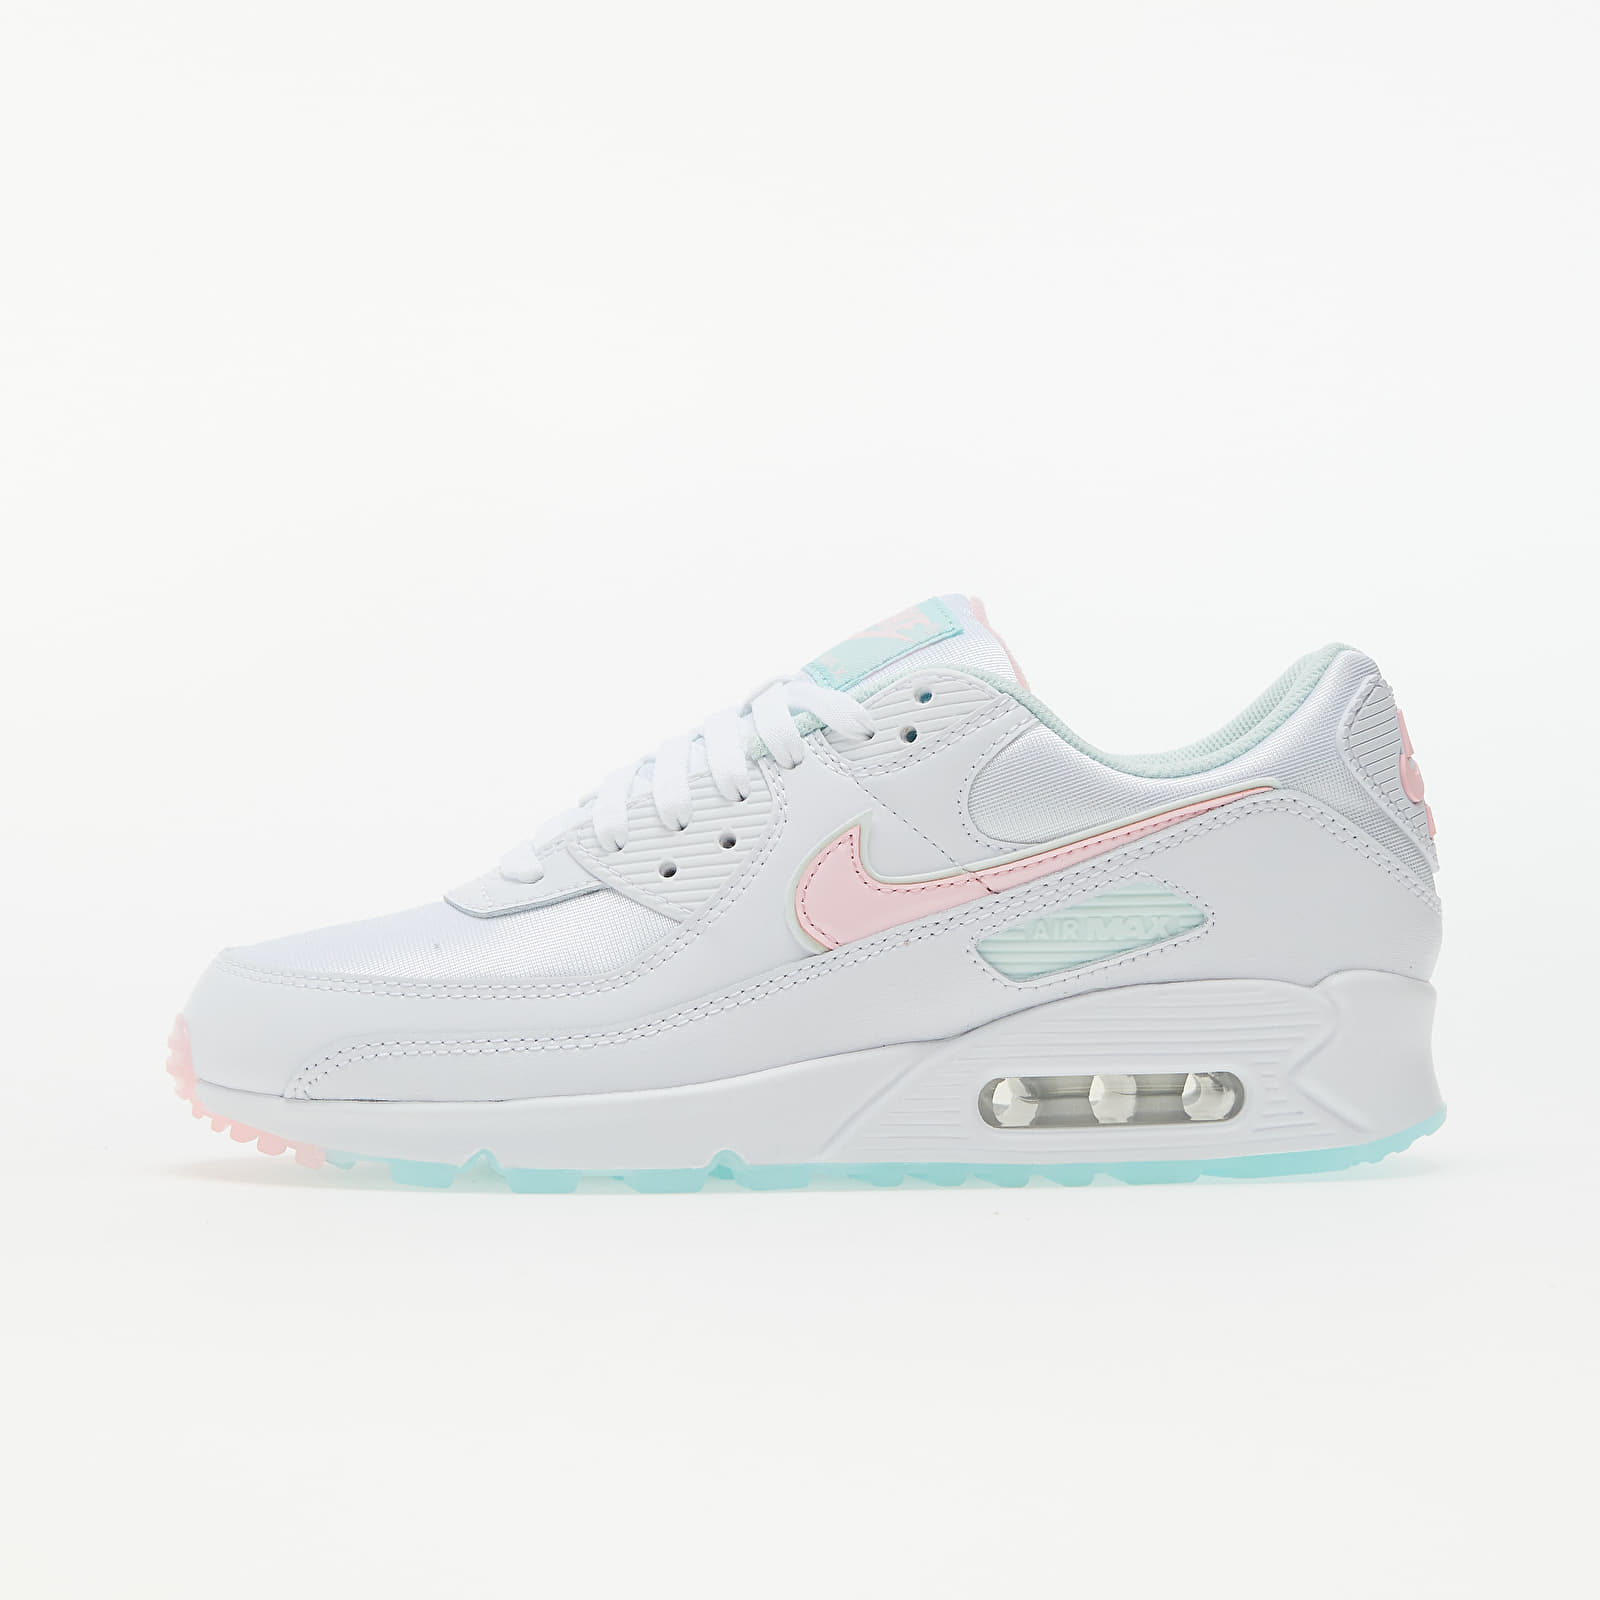 Nike W Air Max 90 White/ Arctic Punch-Barely Green   Footshop